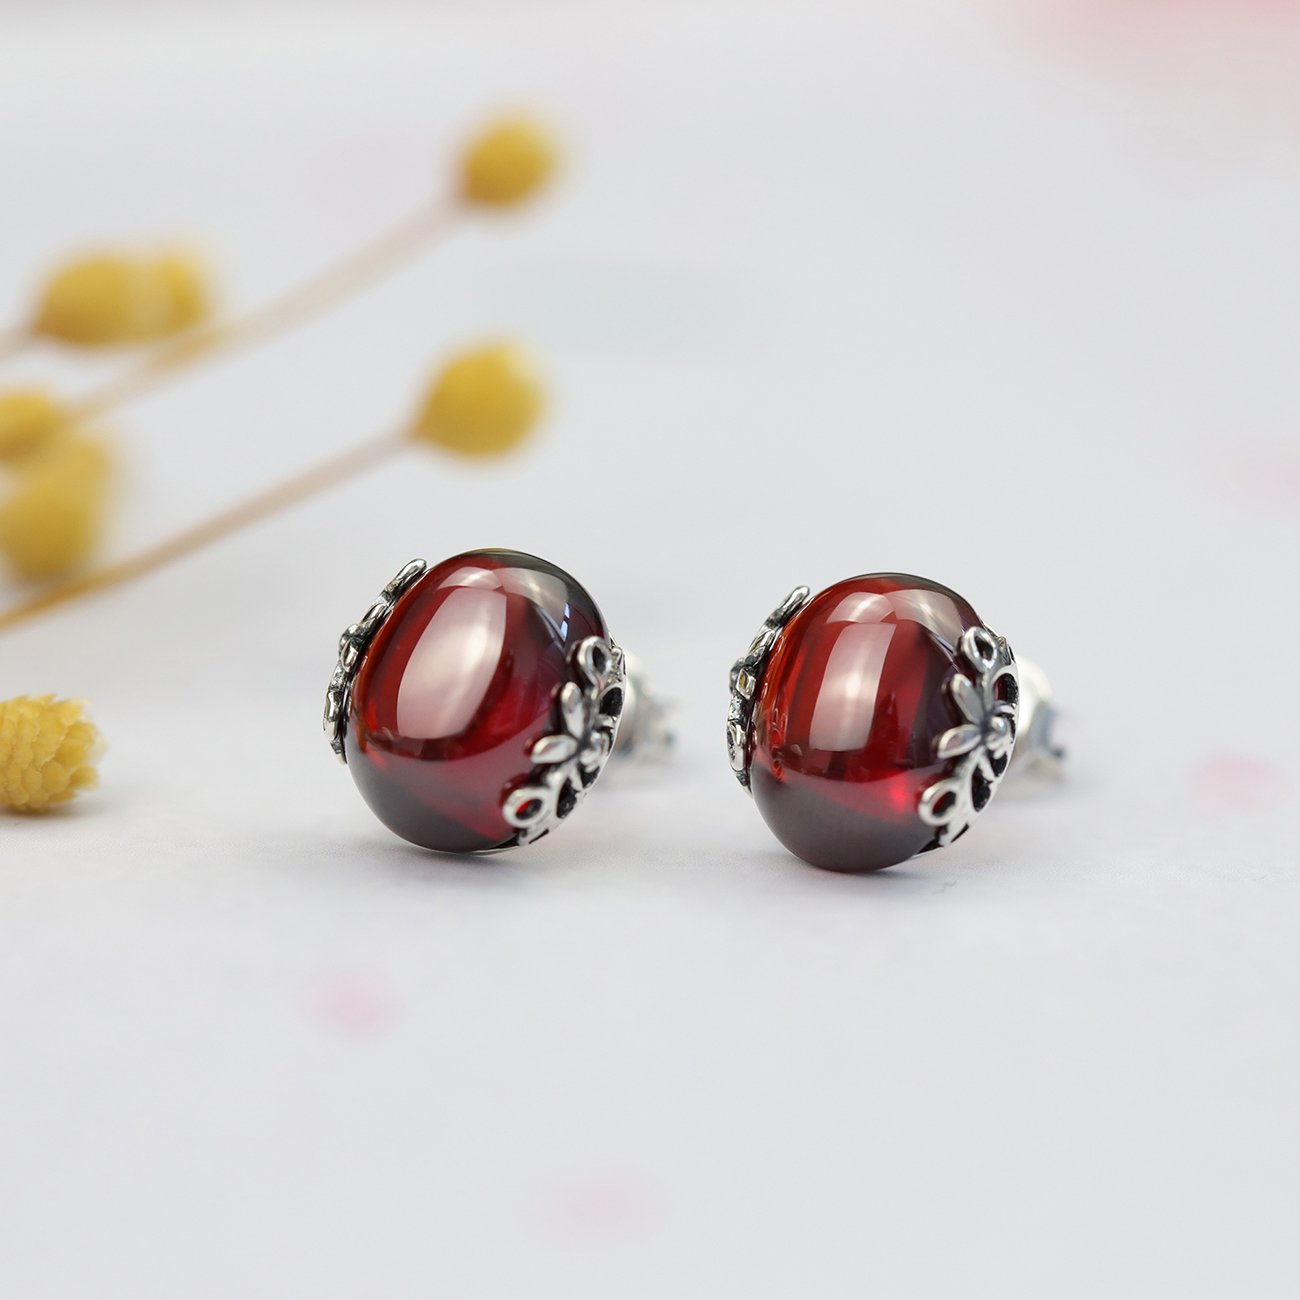 Vintage Red Engraved Crystal Stud Earrings